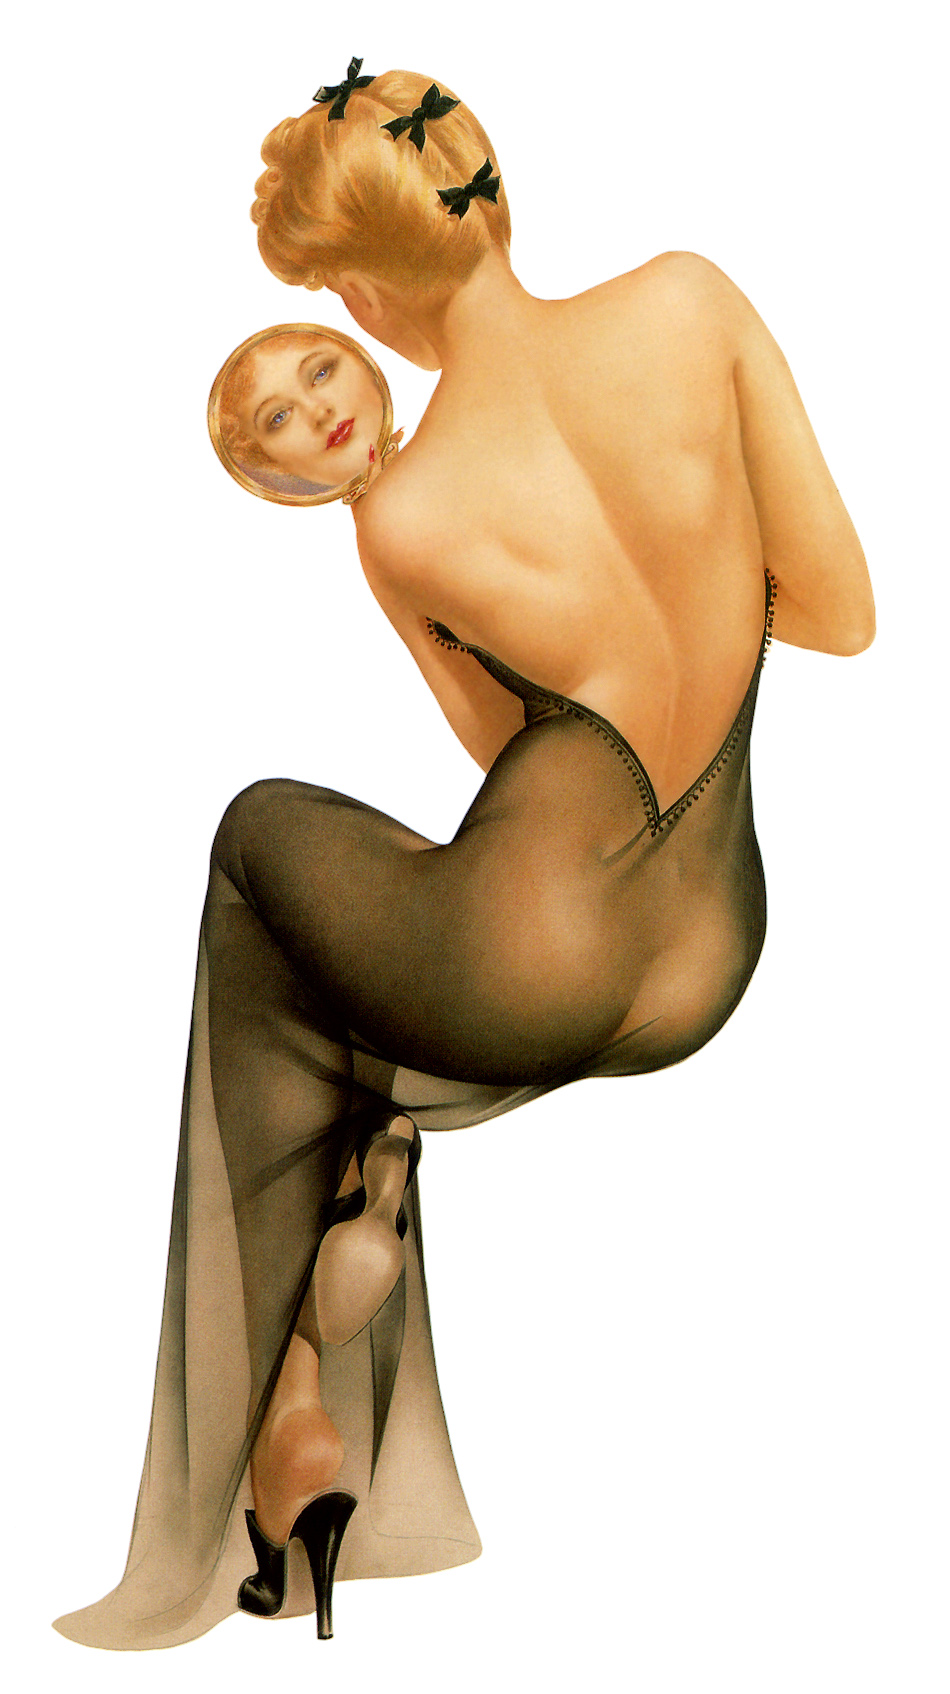 Free Classic Pinups Pin Up Girls By Alberto Vargas Page 1-1546